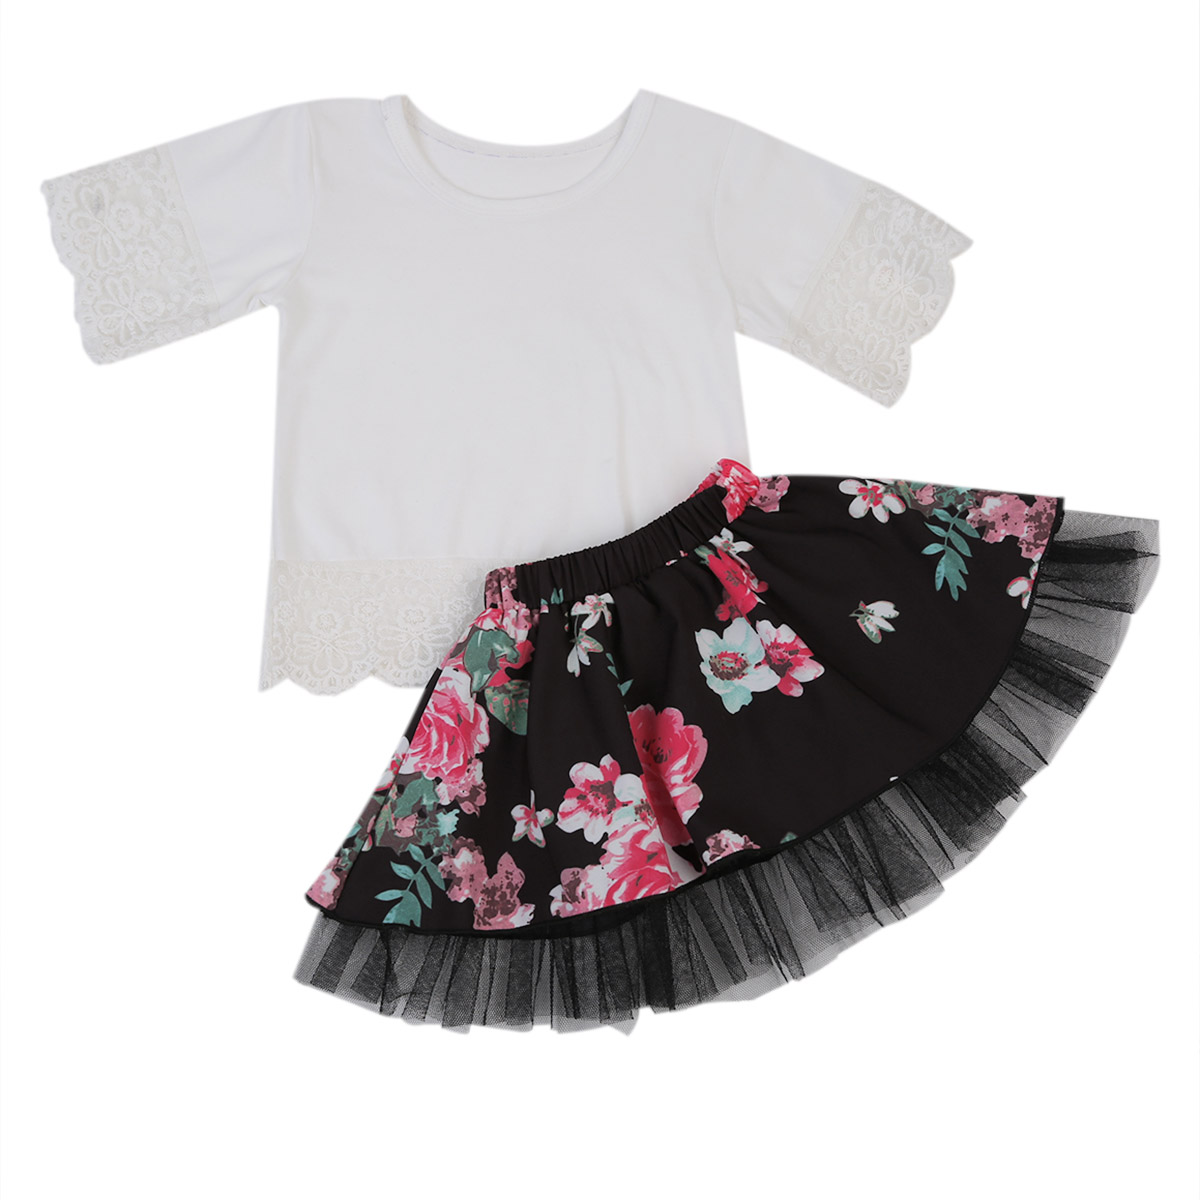 2017 Fashion Kids Baby Girls White Lace Tops Floral Tulle Tutu Skirt 2Pcs Outfits Clothing Set 1 6T 2019 in Clothing Sets from Mother Kids